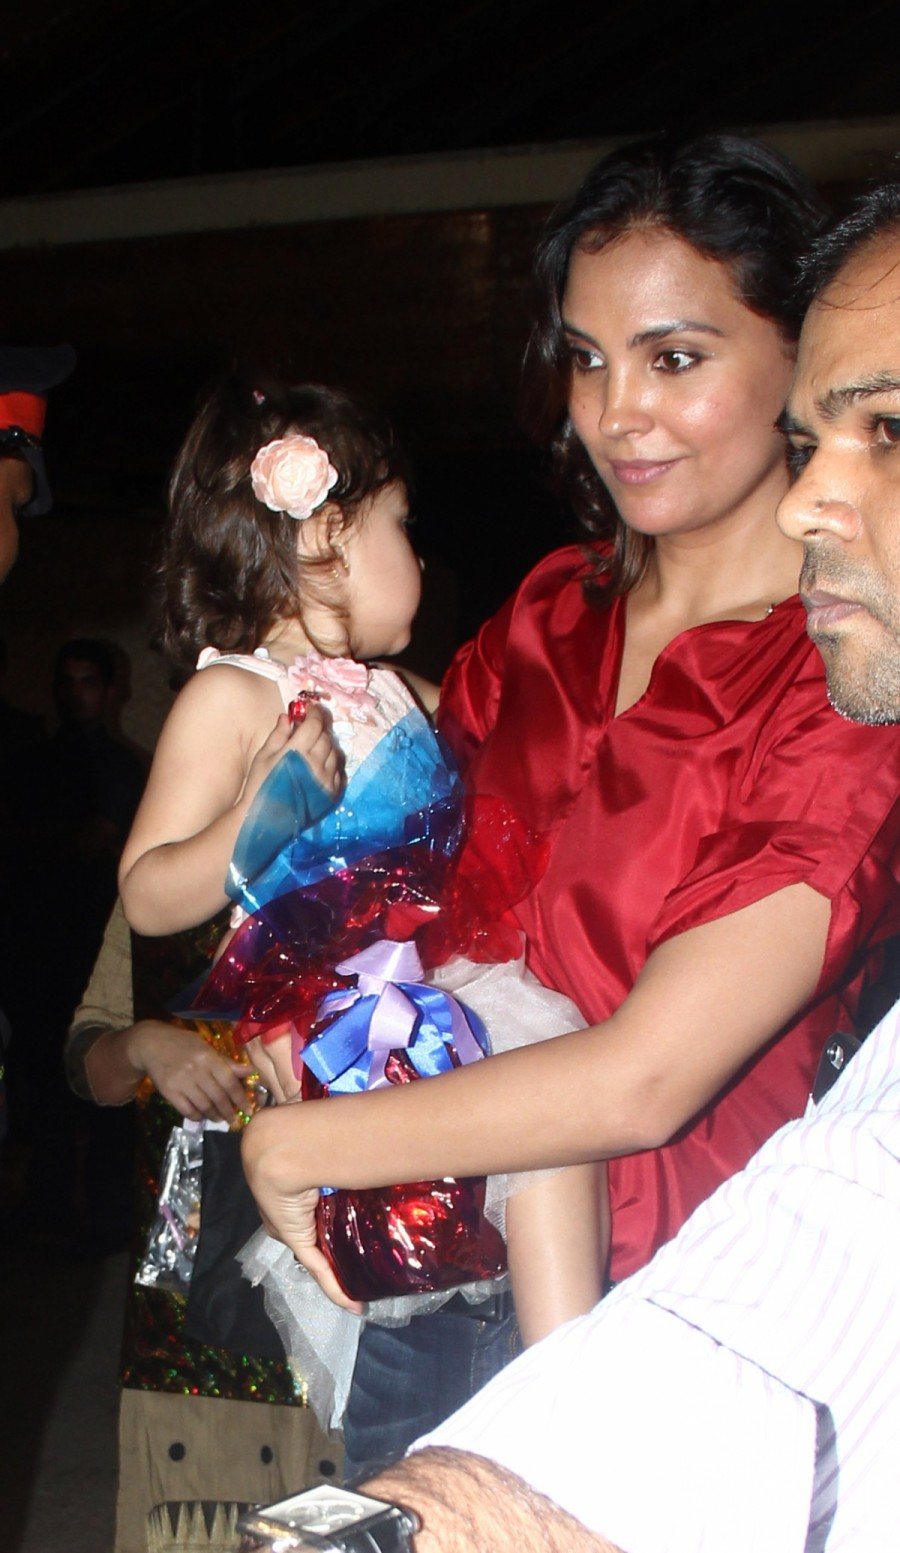 Mother's Day Special,happy mother's day,mother's day wishes,star moms,bollywood moms,celeb moms,star kids,super moms